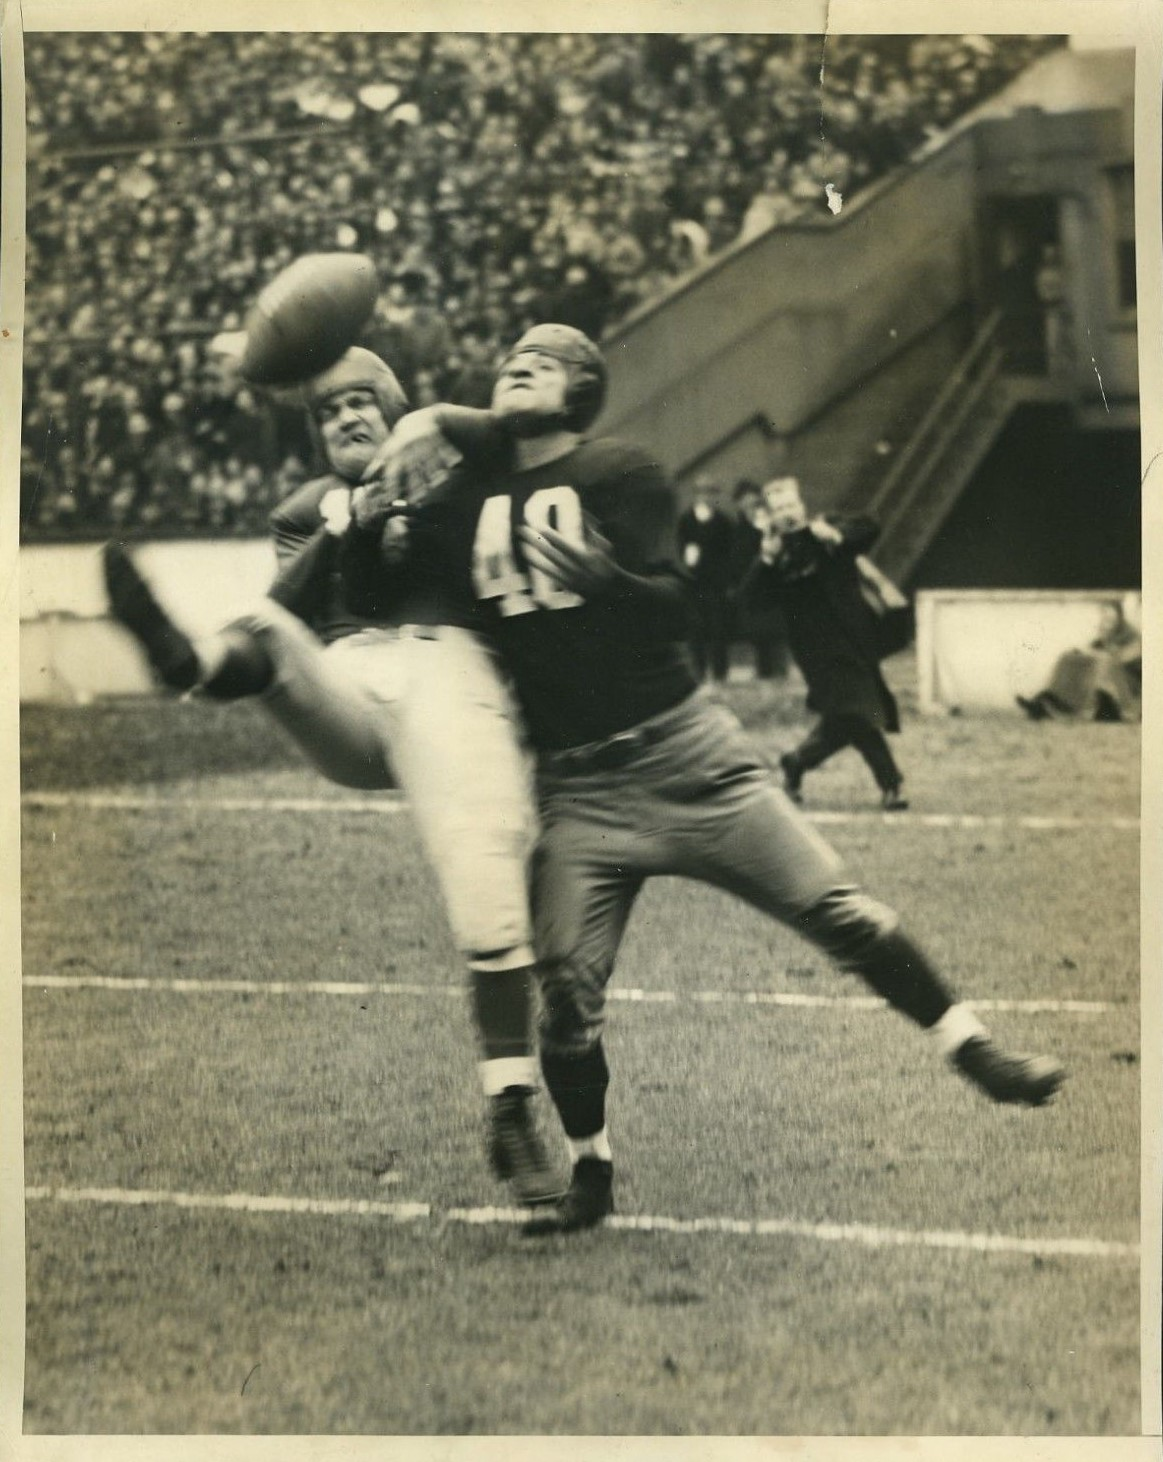 Hank Soar (15), New York Giants (December 3, 1939)